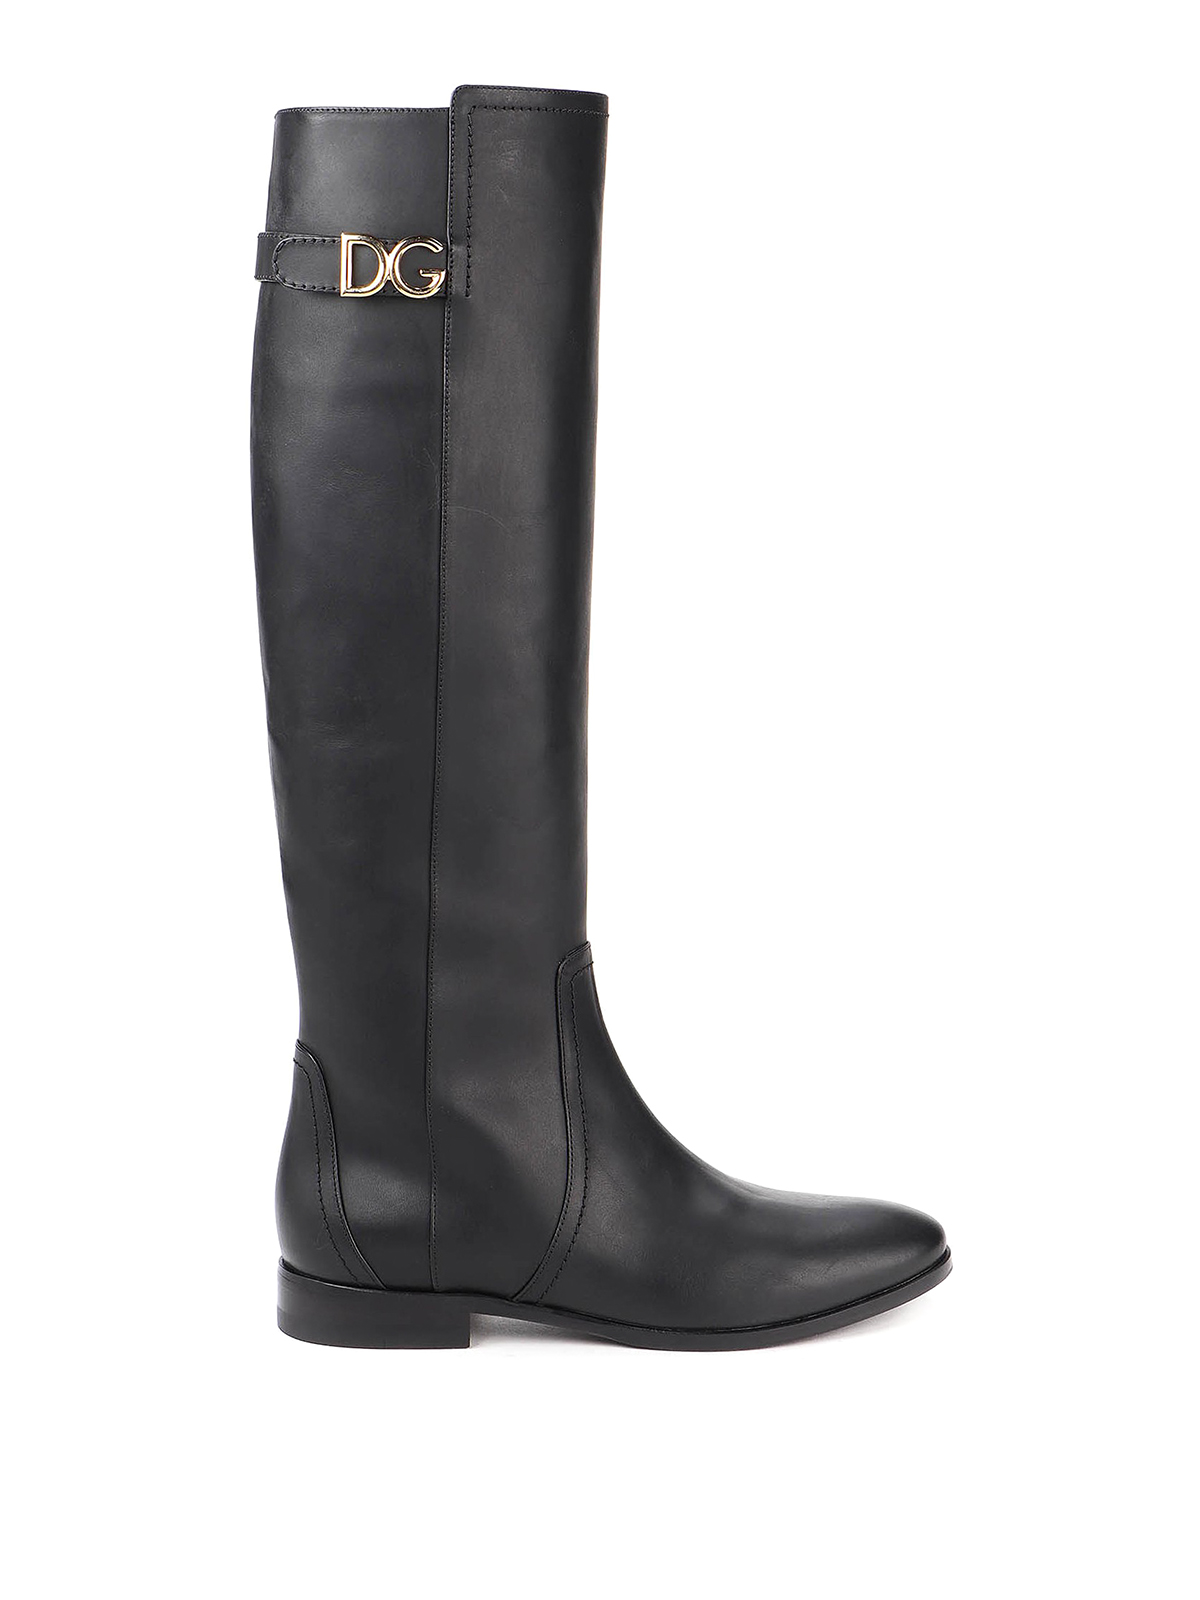 Dolce & Gabbana Leathers DG LOGO COW LEATHER BOOTS